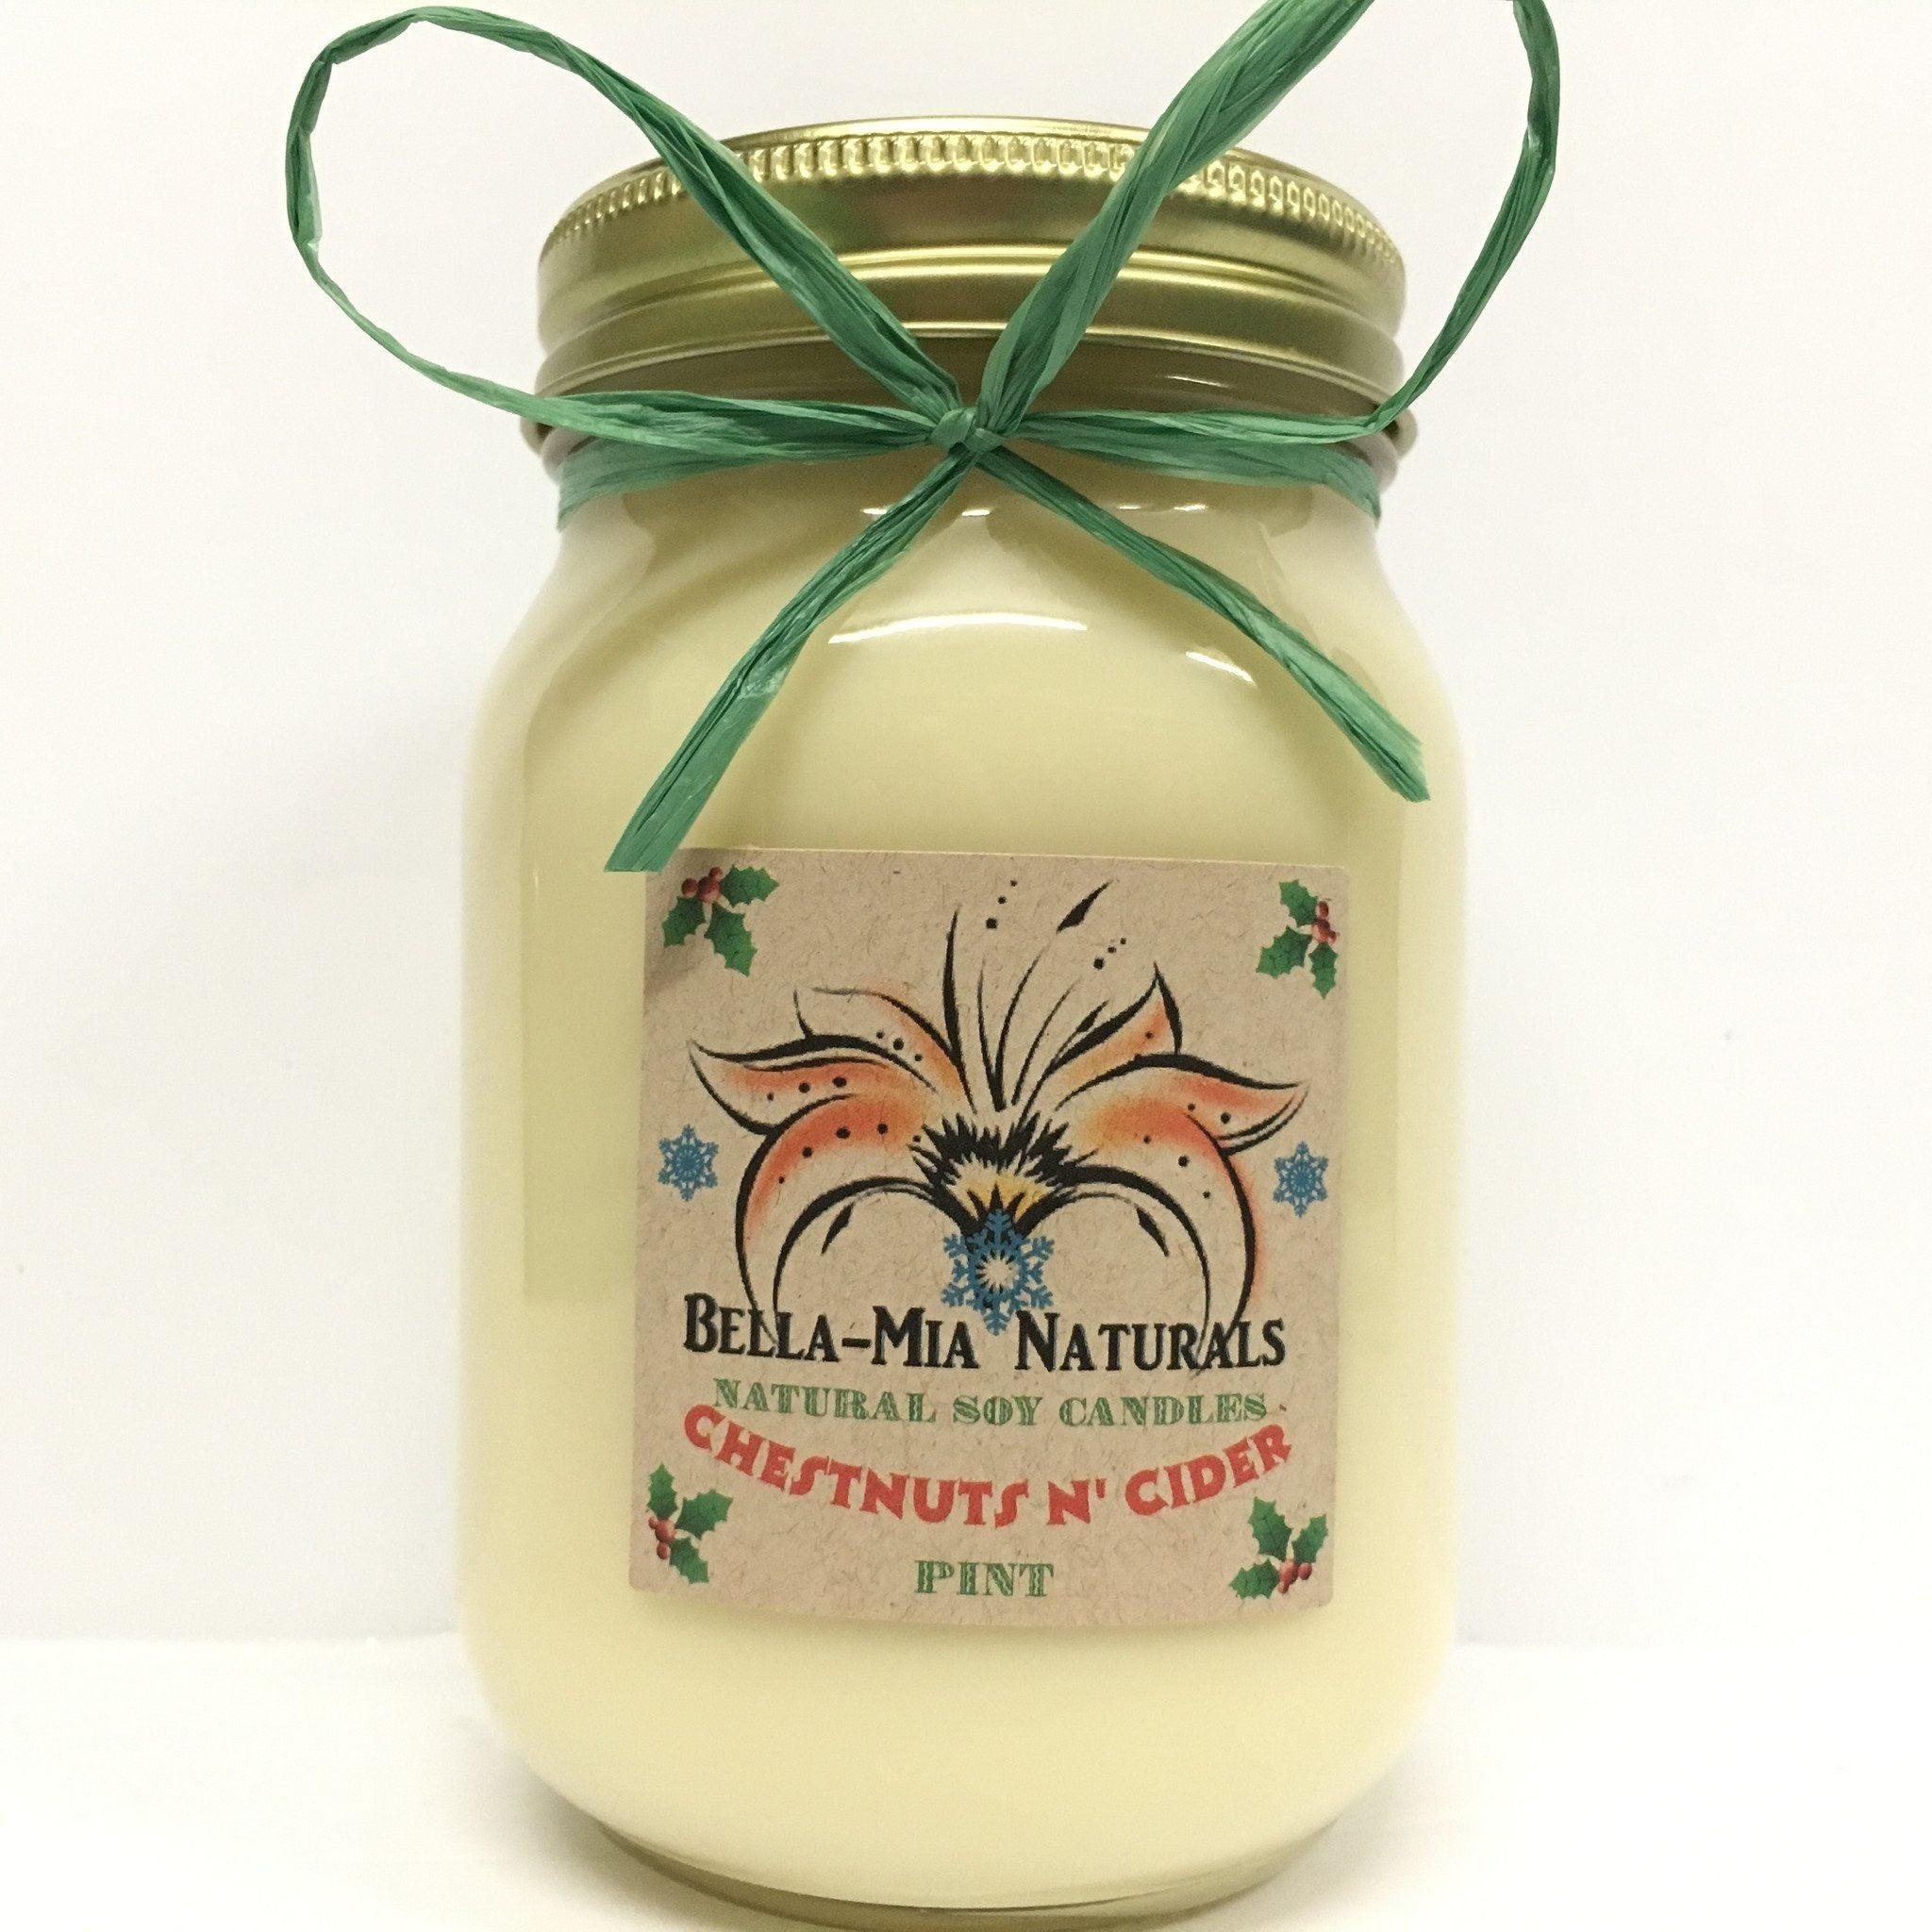 Chestnuts N' Cider Natural Hand Poured Soy Candles - Pint - Bella-Mia Naturals All Natural Soy Candles & Lip Balms - 2